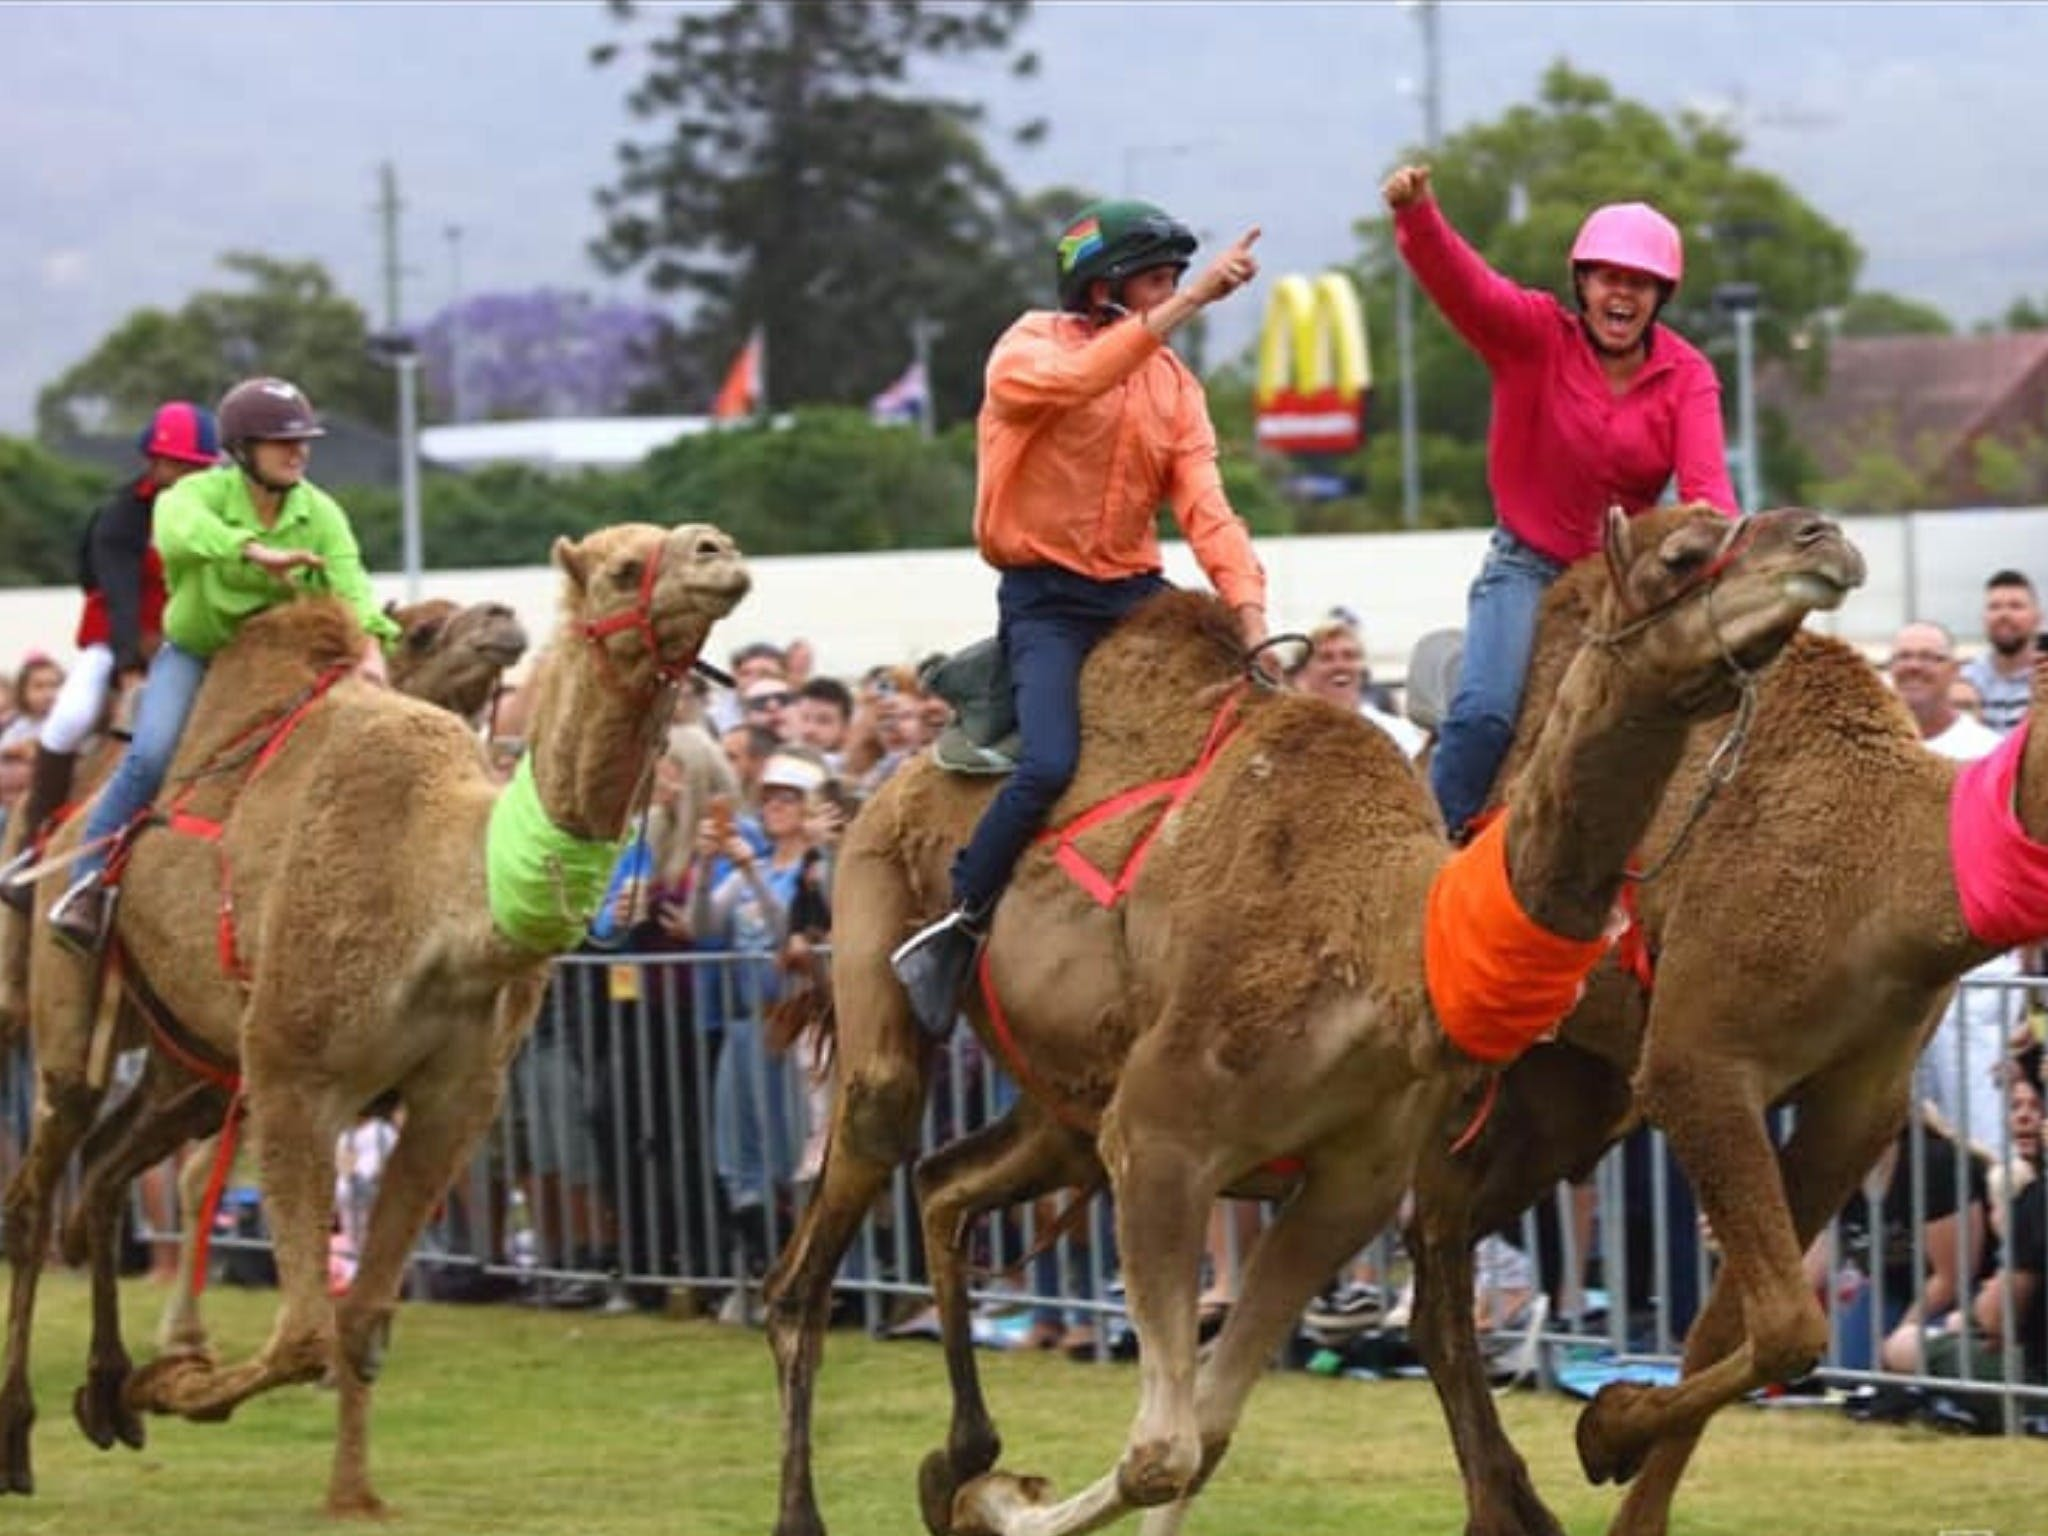 Camel Races at Penrith Paceway - Tourism Brisbane